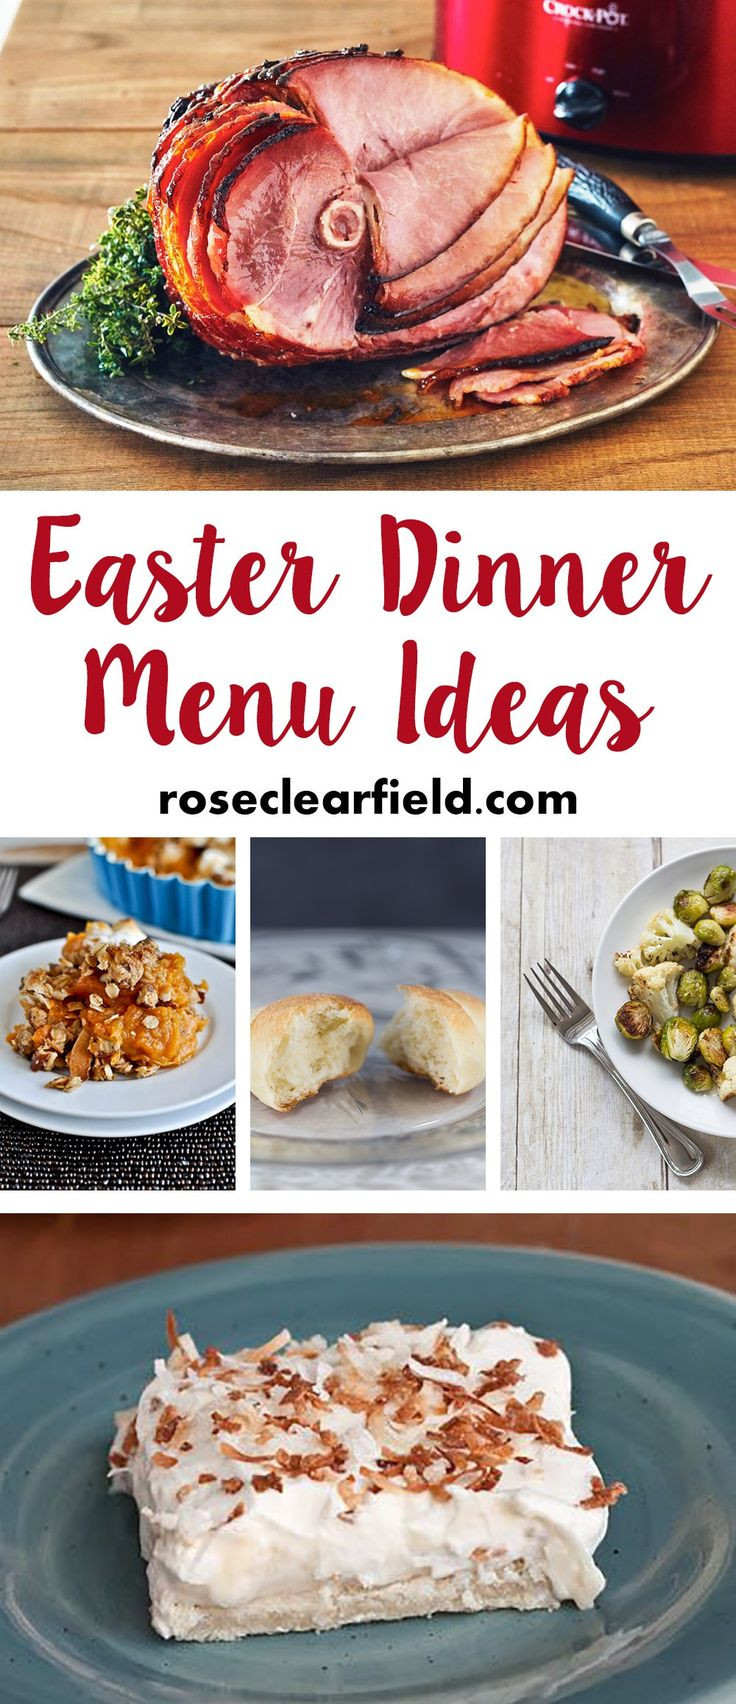 Ideas For Easter Dinner Party  25 Best Ideas about Easter Dinner Menu Ideas on Pinterest